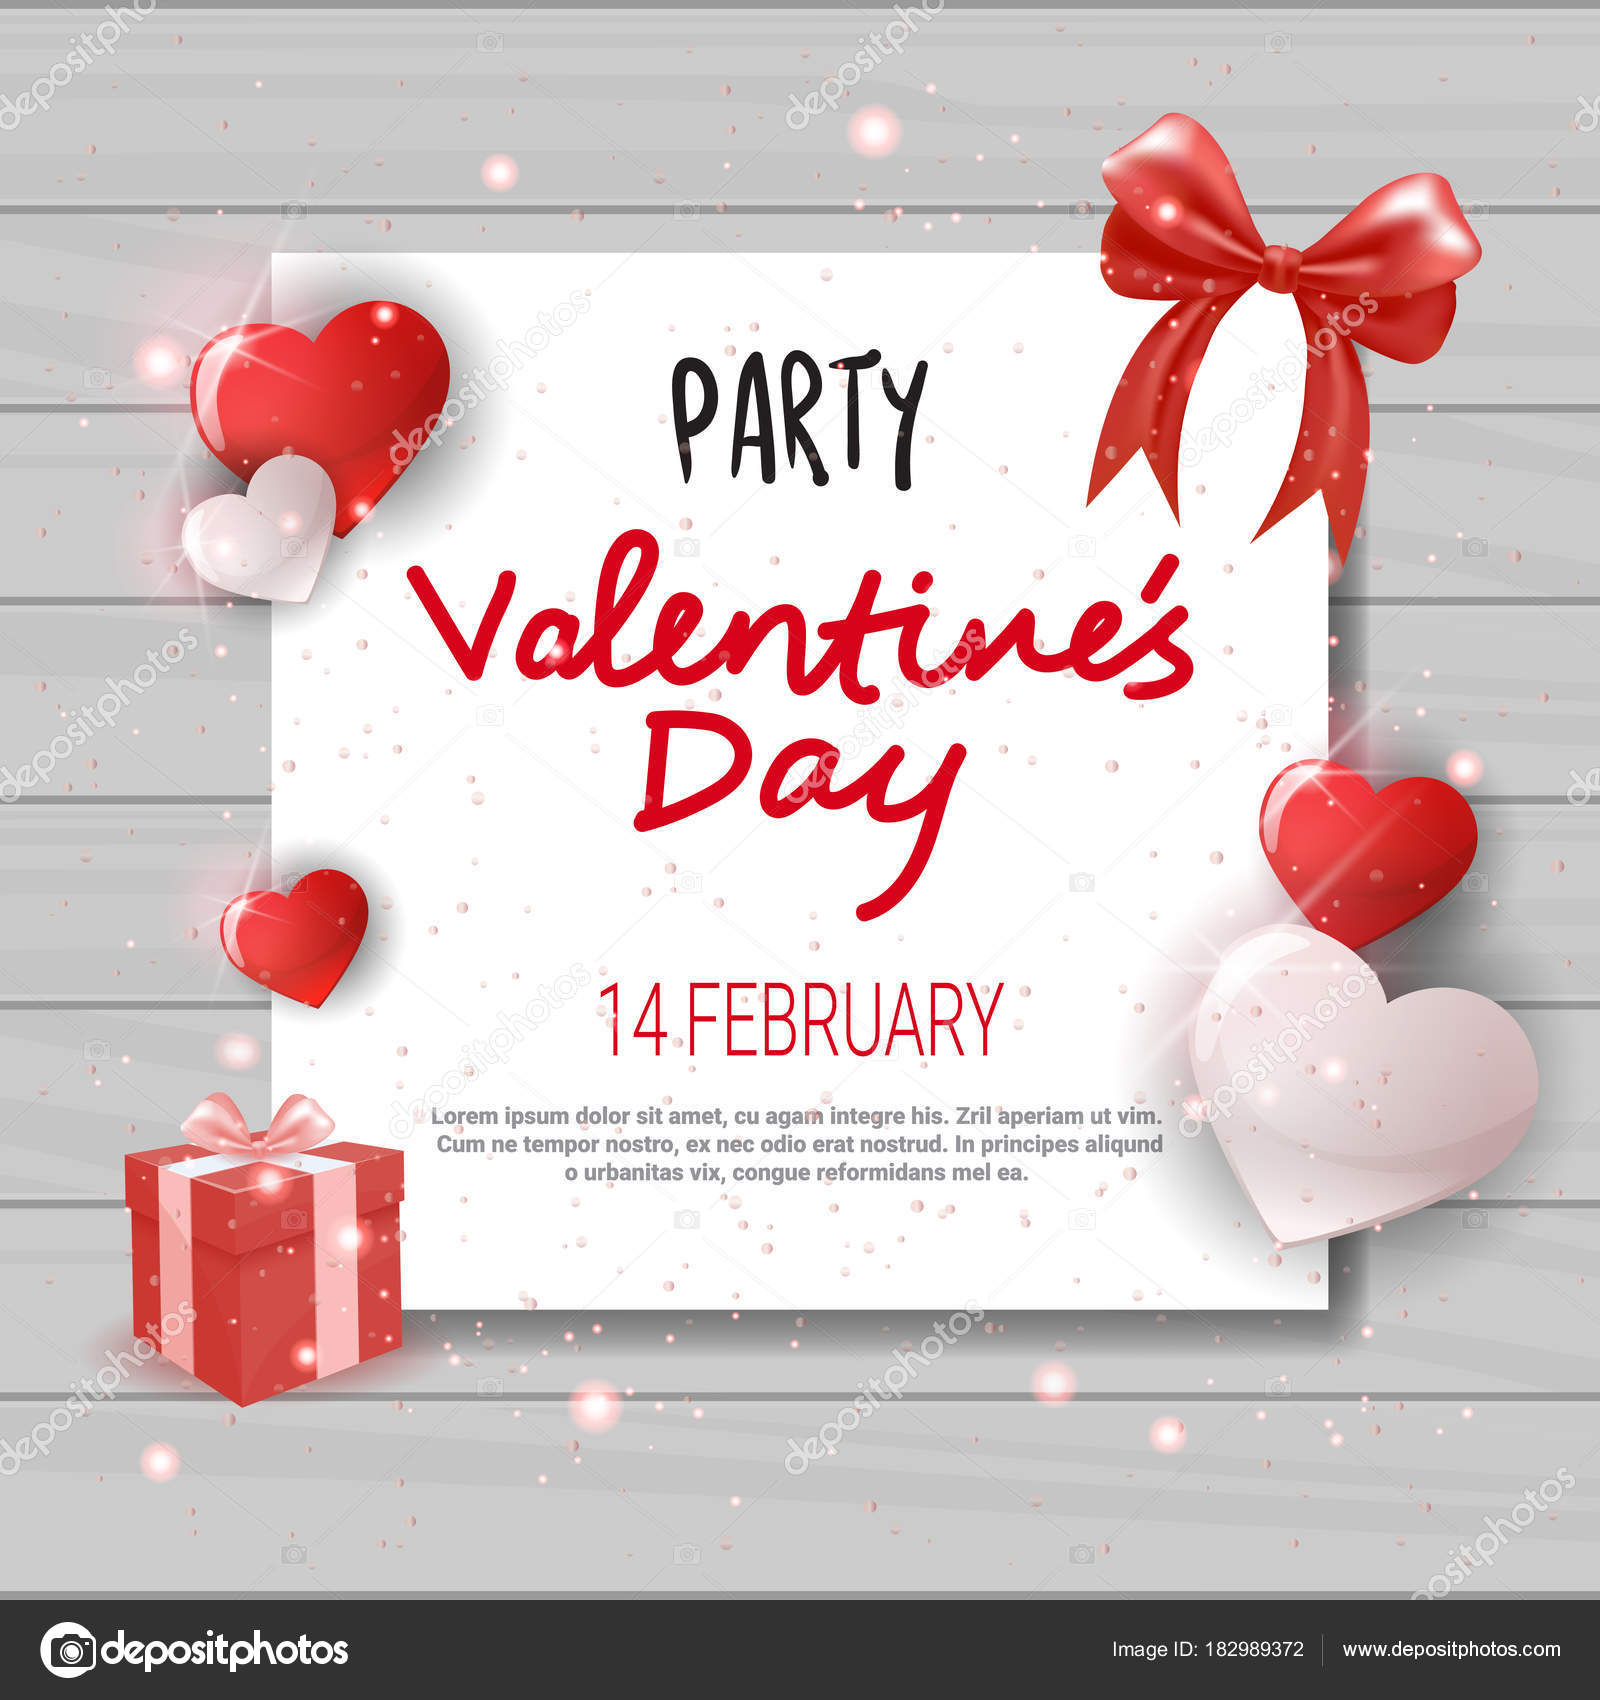 Valentines Day Party Invitation Template Flyer Design Love Holiday